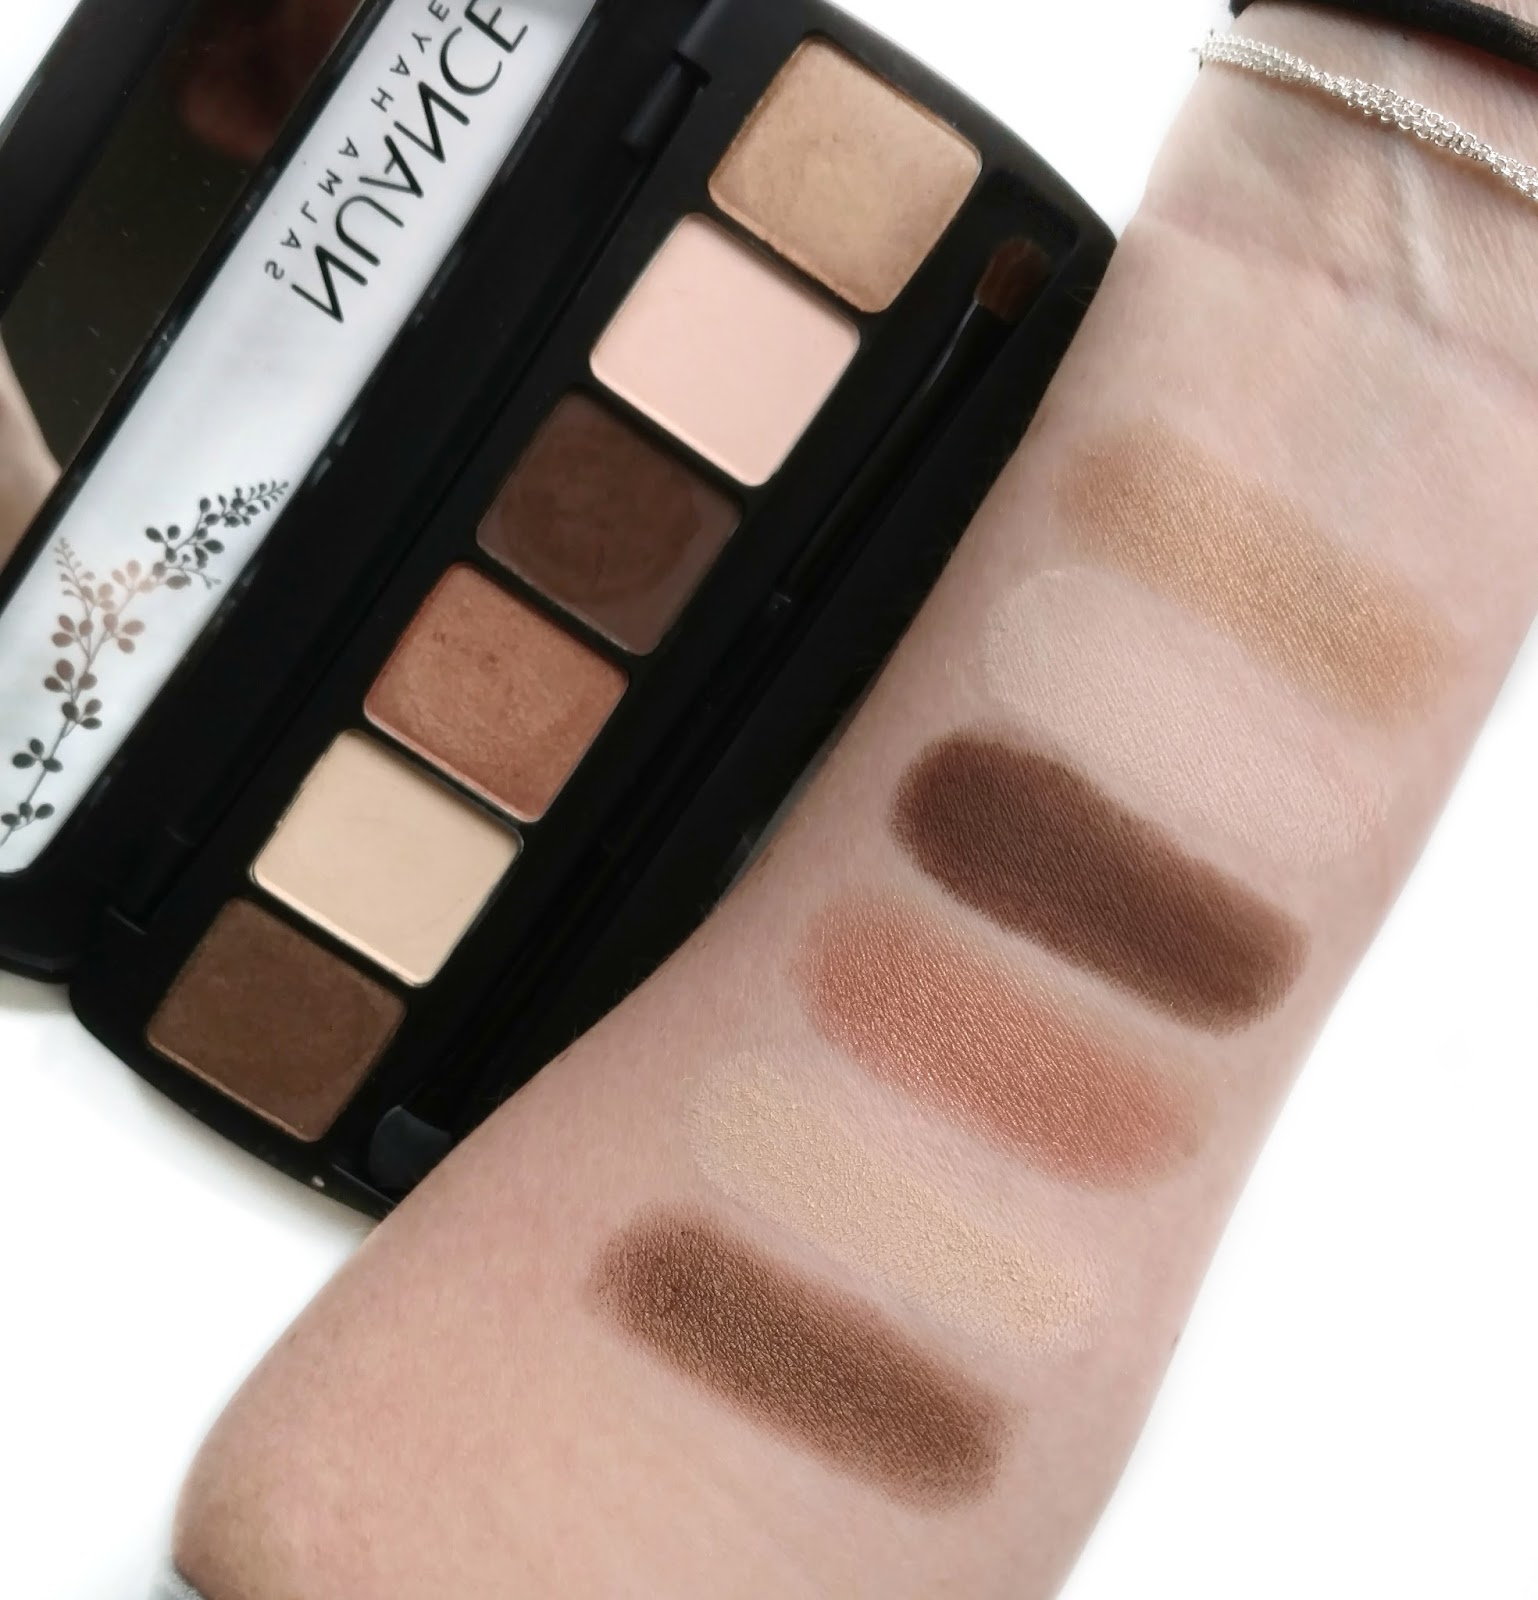 nuance salma hayek eyeshadow swatches